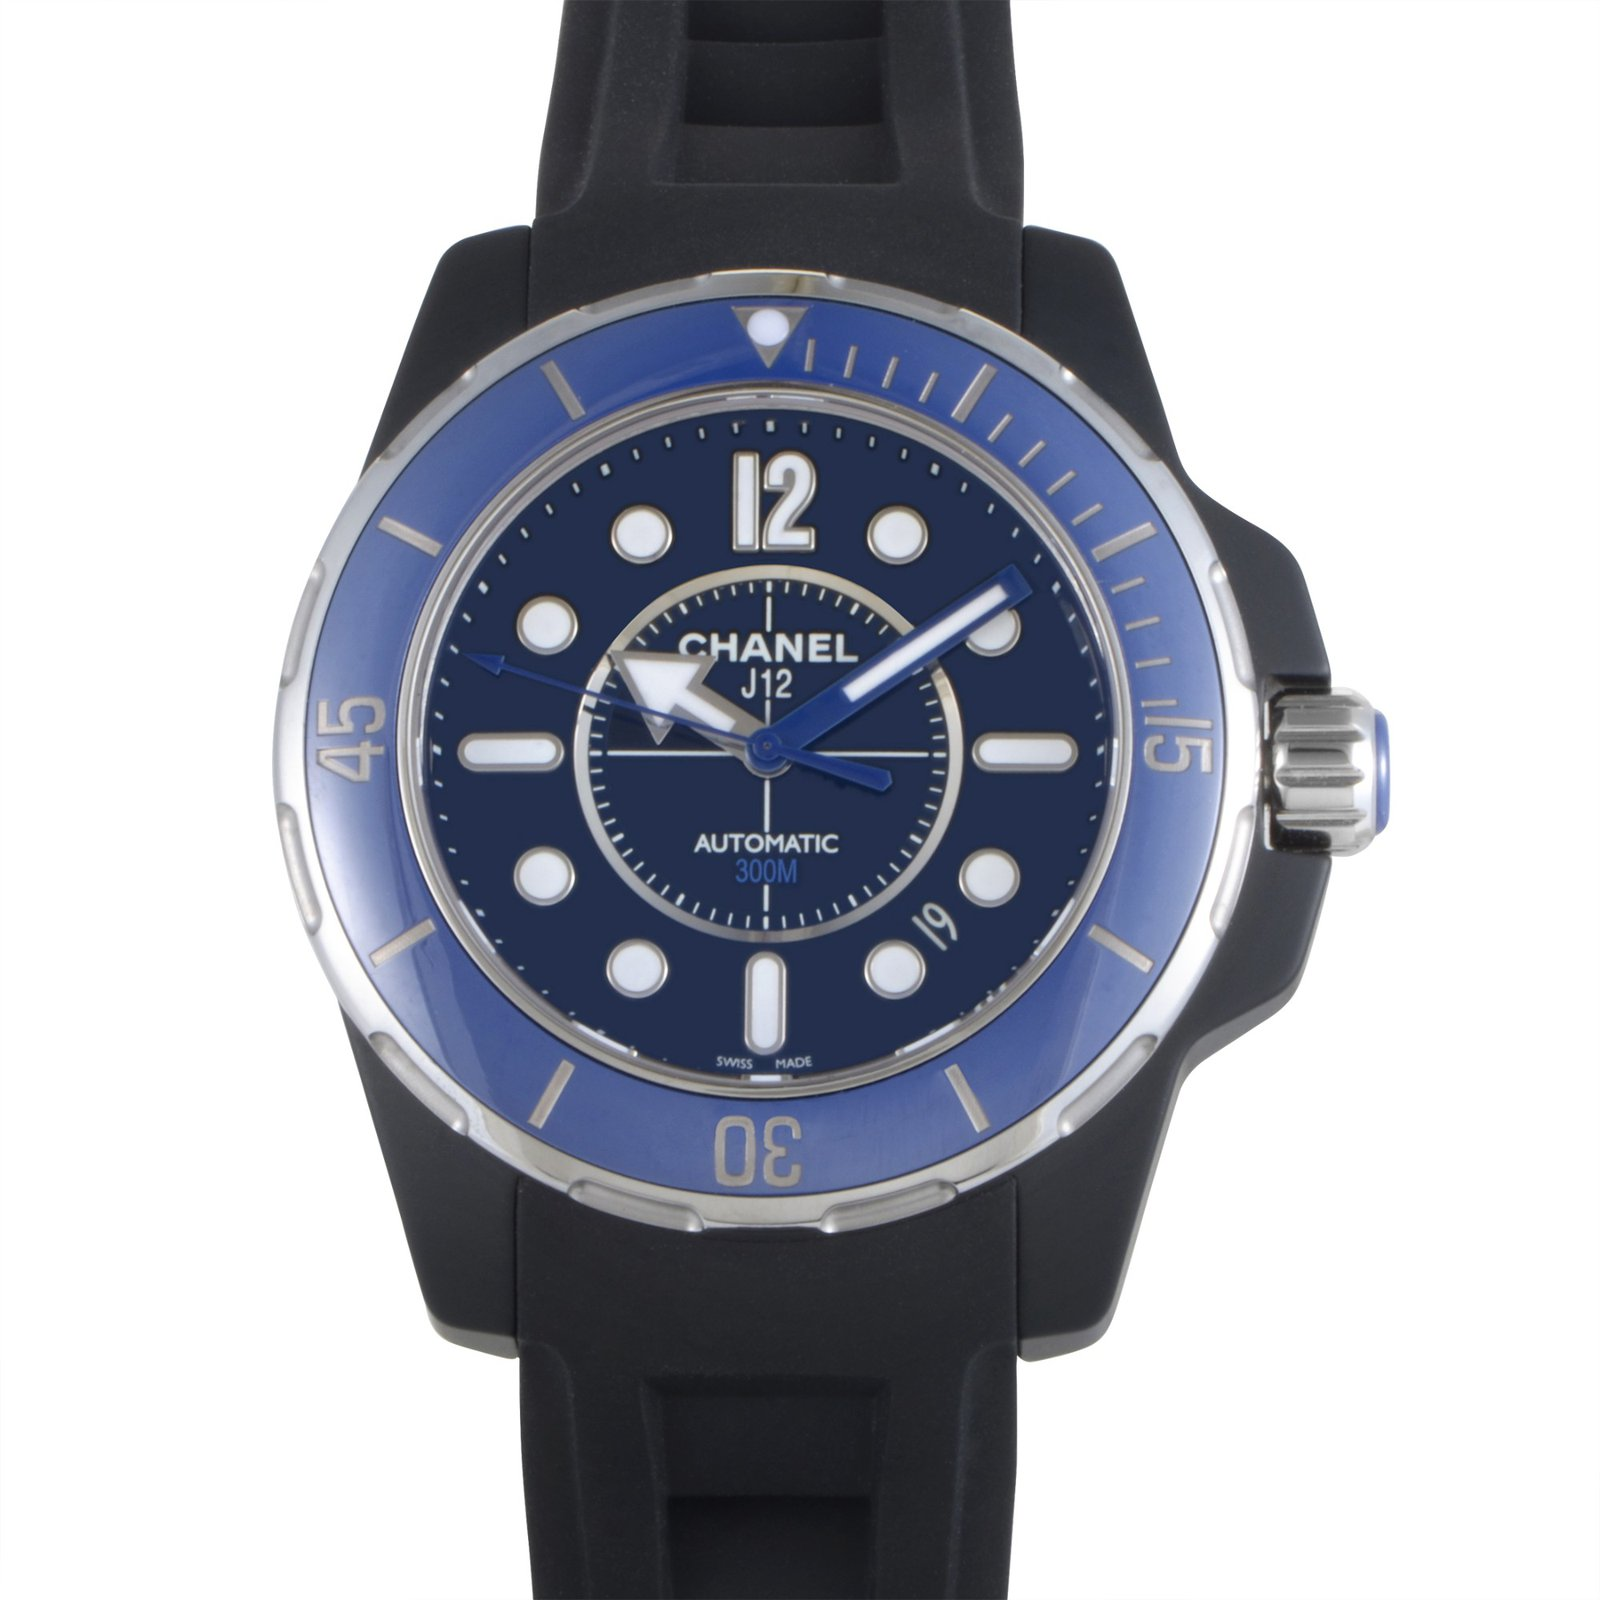 776d74bf CHANEL J12 MARINE MEN'S 42mm WRISTWATCH GREAT CONDITIONS